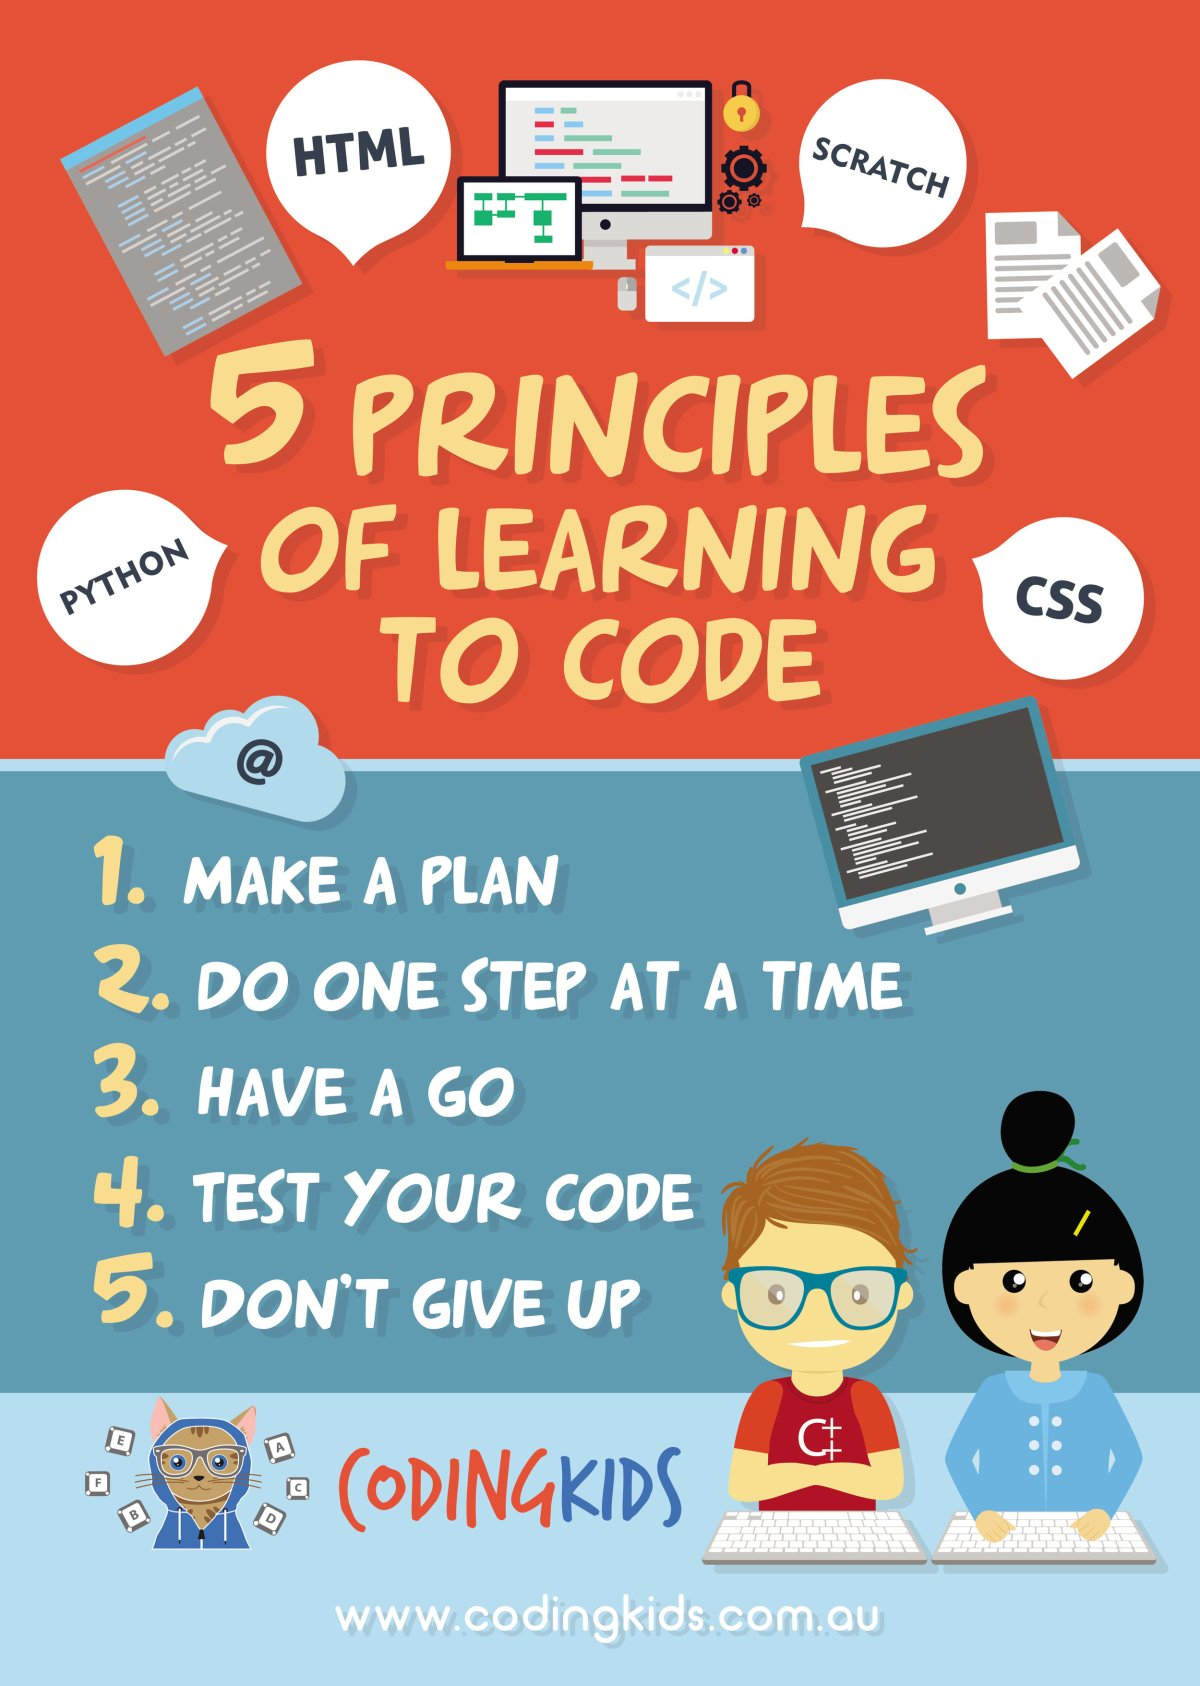 5 principles of learning to code with Coding Kids